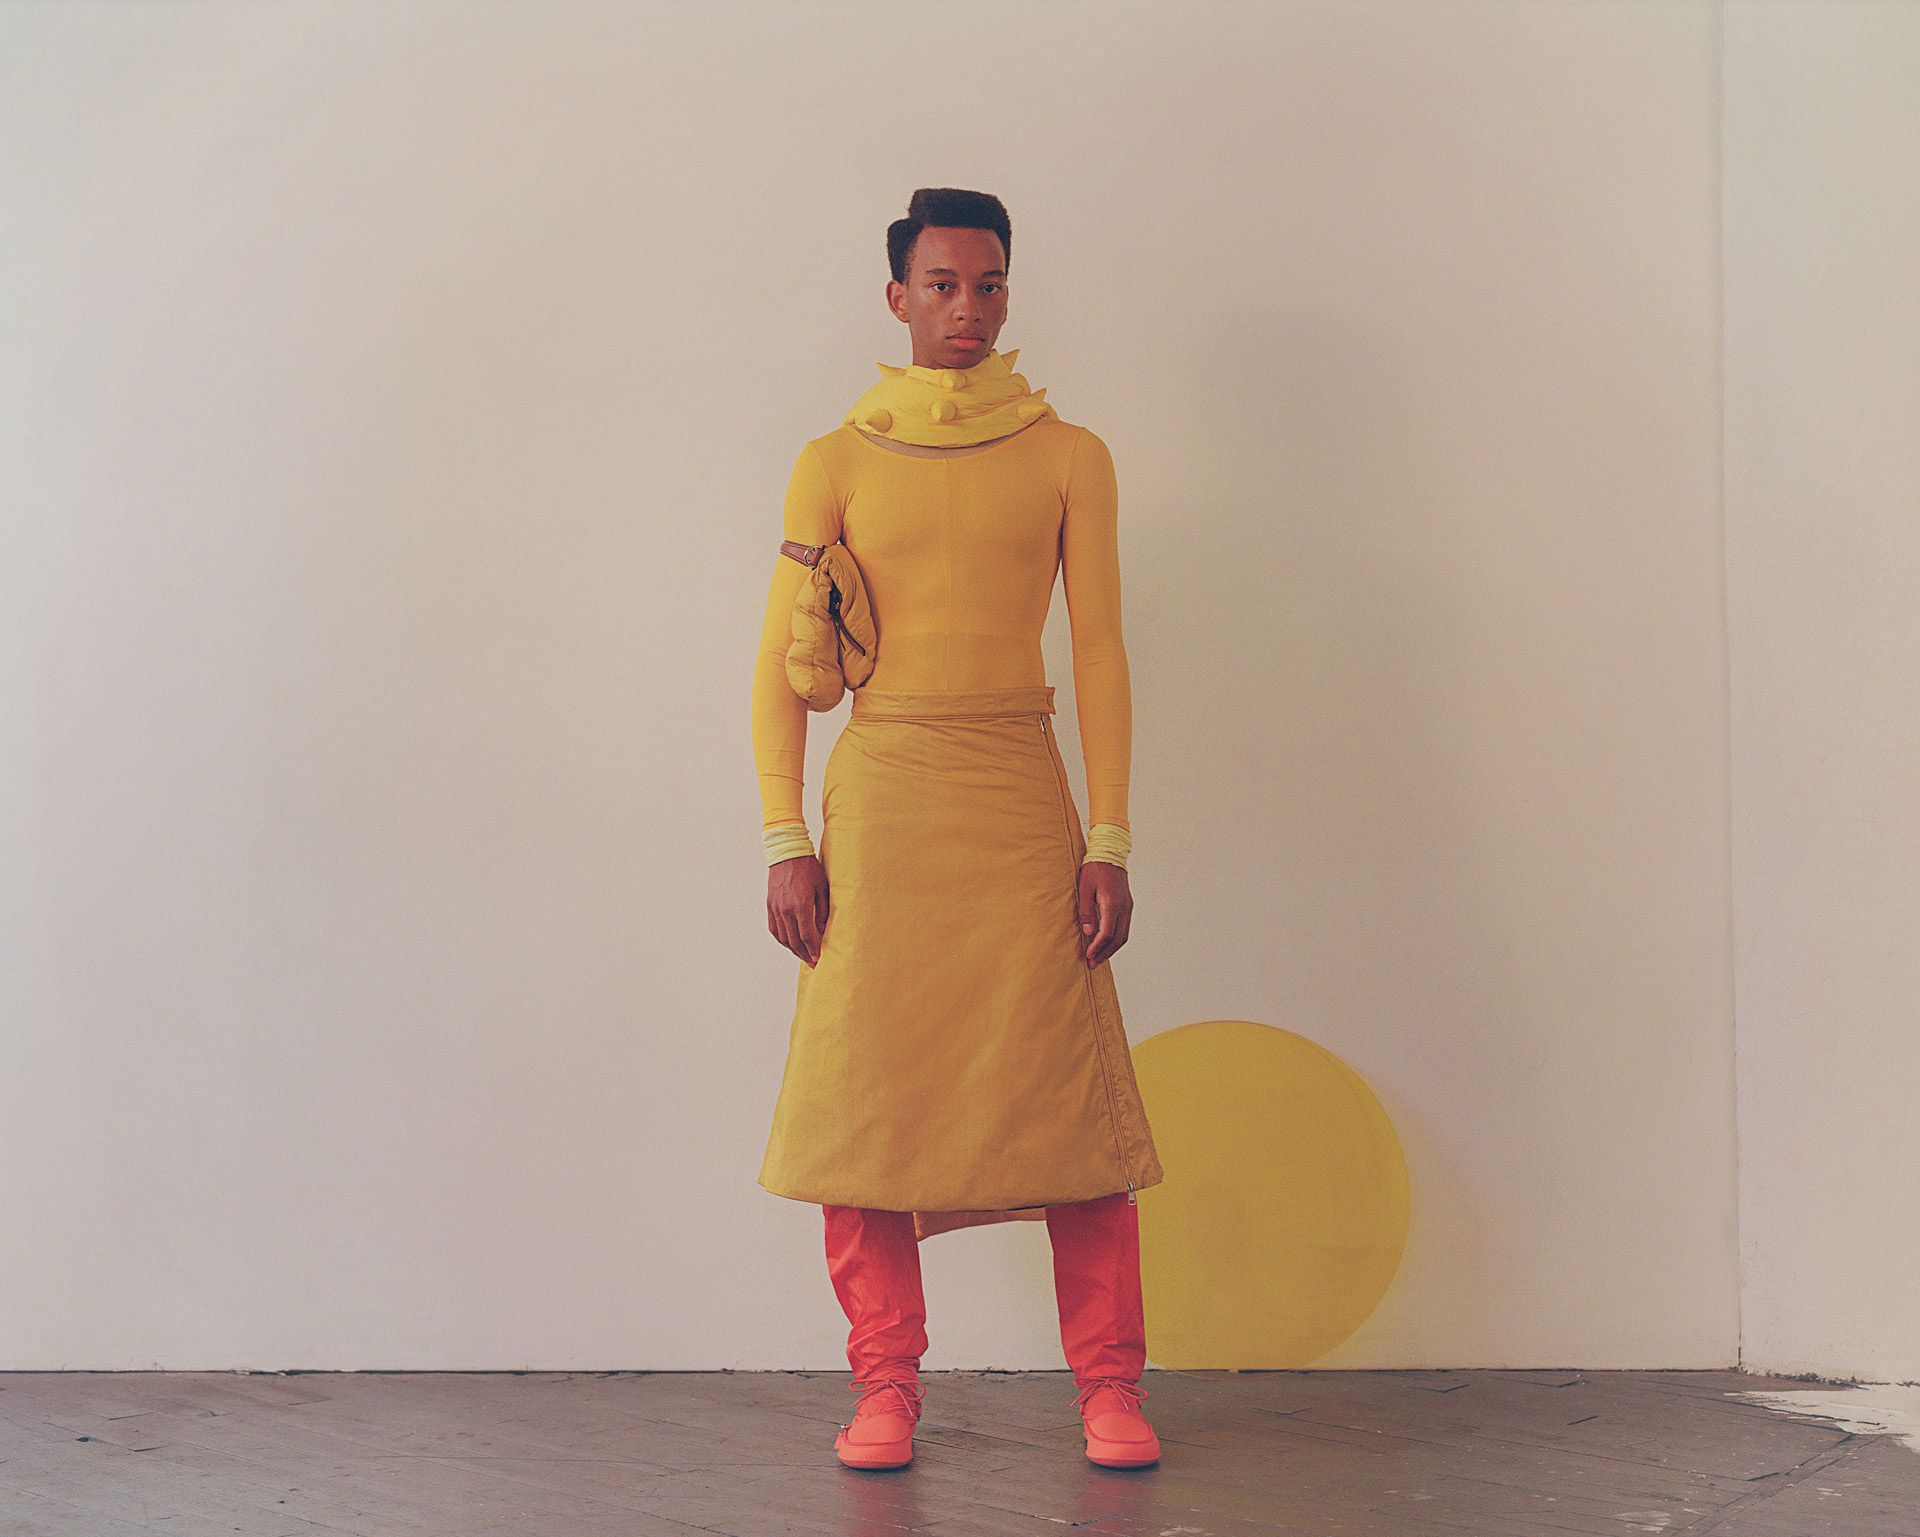 black male model standing in studio looking at camera wearing red boots yellow skirt yellow long-sleeved shirt and small yellow puffy spiked scarf with yellow acrylic circle in the background photographed by Oumayma B Tanfous for Moncler as a story for Document Journal magazine